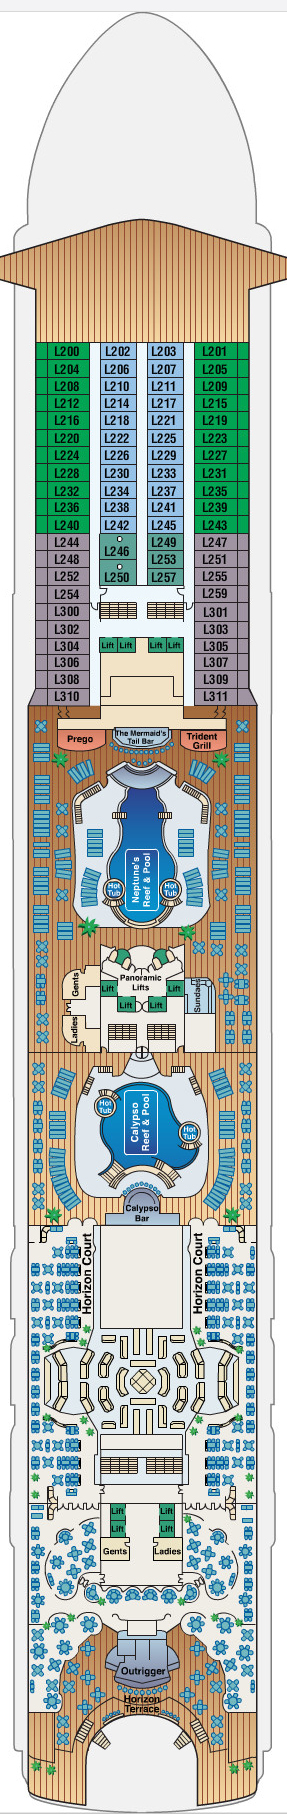 Star Princess Lido Deck 14 layout